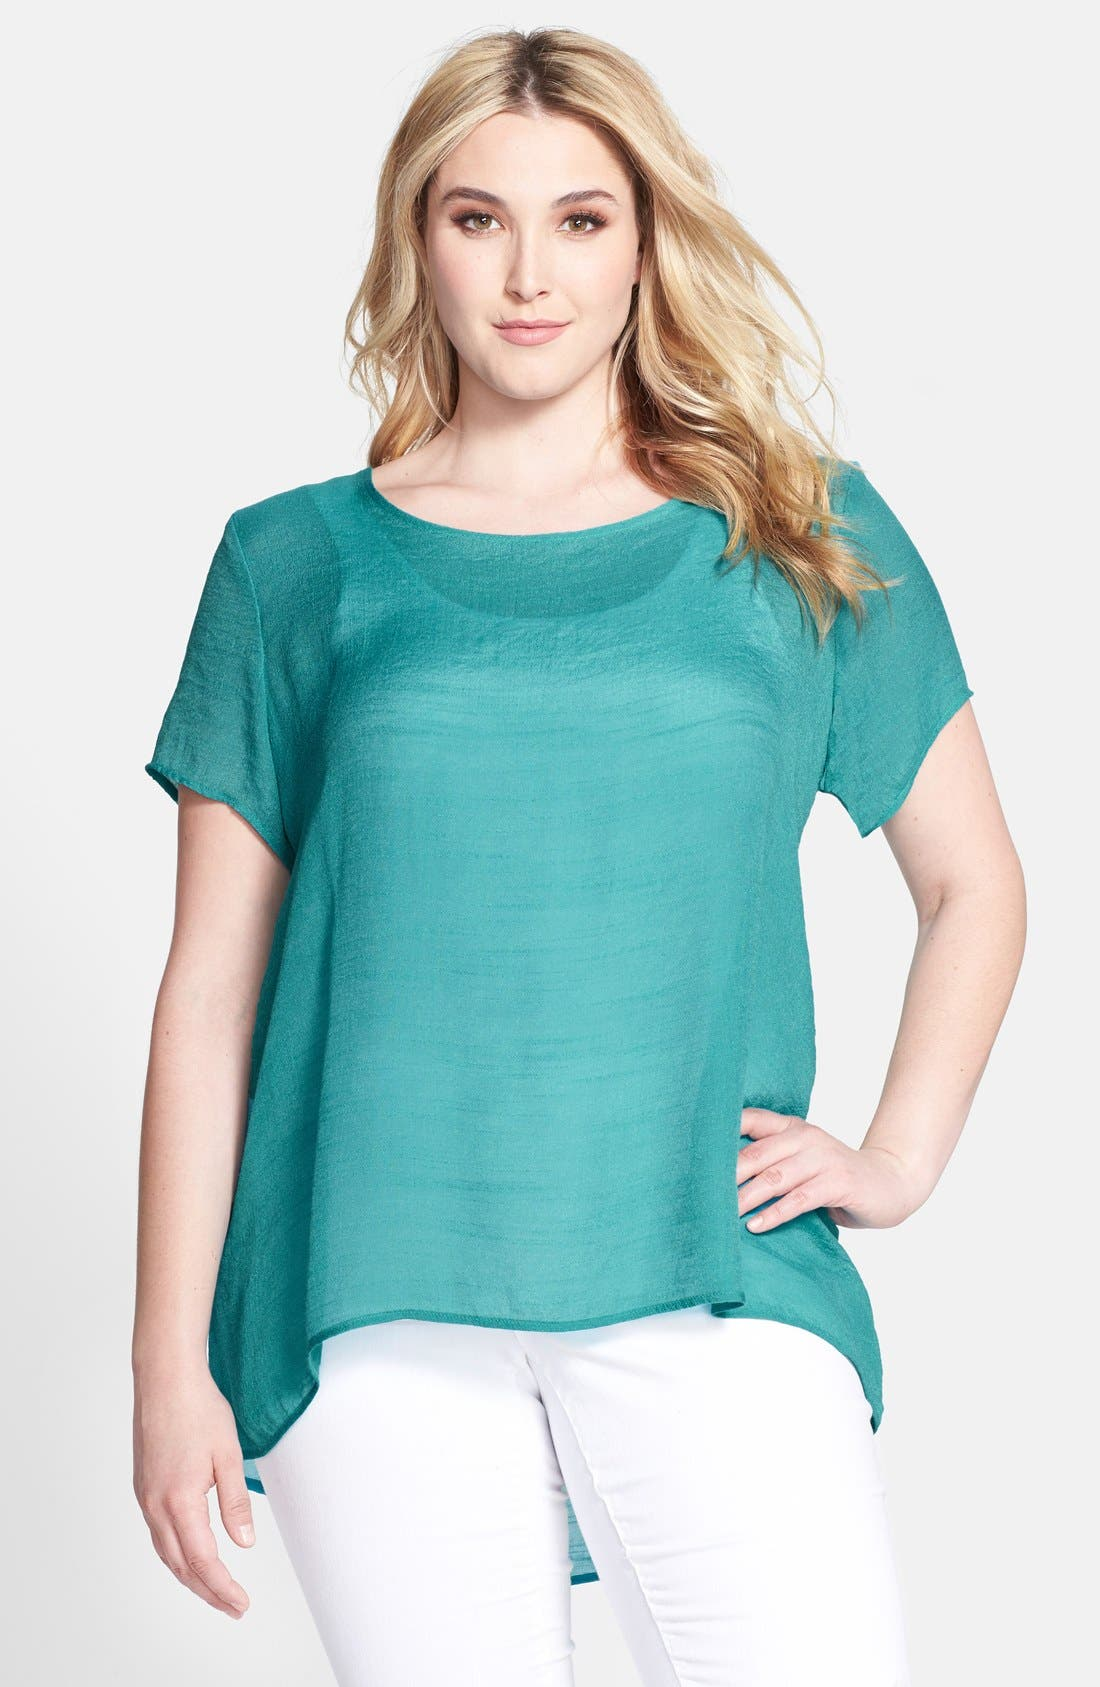 Alternate Image 1 Selected - Bobeau High/Low Textured Blouse (Plus Size)